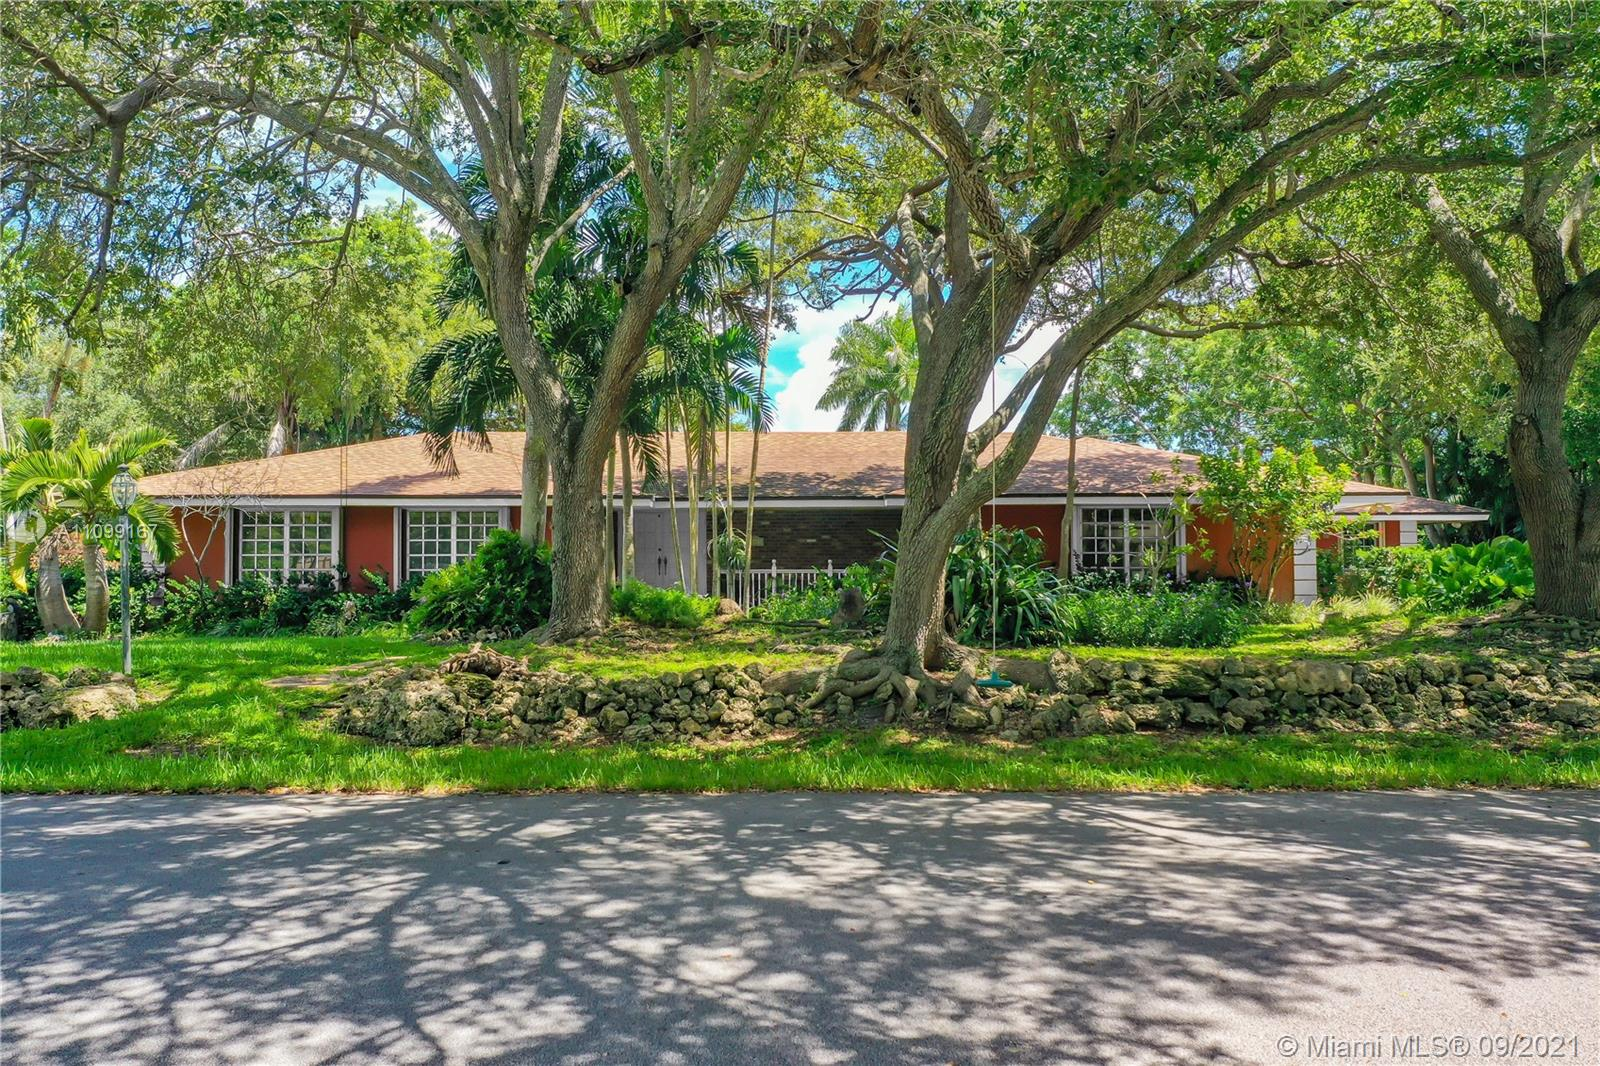 One-of-a-kind neighborhood in the best area in Palmetto Bay, adjacent to the Nature Preserve, walking distance to Chinese Bridge-Deering Estate.  Magnificent large old oak trees in the front-rear of the property. 5 bed/3 bath open floor plan (appraisal livable sq.ft: 3,467) with incredible master suite on one side - 4 spacious bedrooms on the other end. All the bedrooms have a view of the pool patio. Entry leads to huge living/dining/family room and kitchen with lots of natural light.  Master suite has French doors leading to pool/patio, terrific area for a mini-office, an enormous bathroom with walk-in shower, double sinks, deep bathtub, enclosed toilet/bidet. New roof in 2015, new A/C in 2020.  This home needs updating but has lots to offer and new owners can modify with their own style.